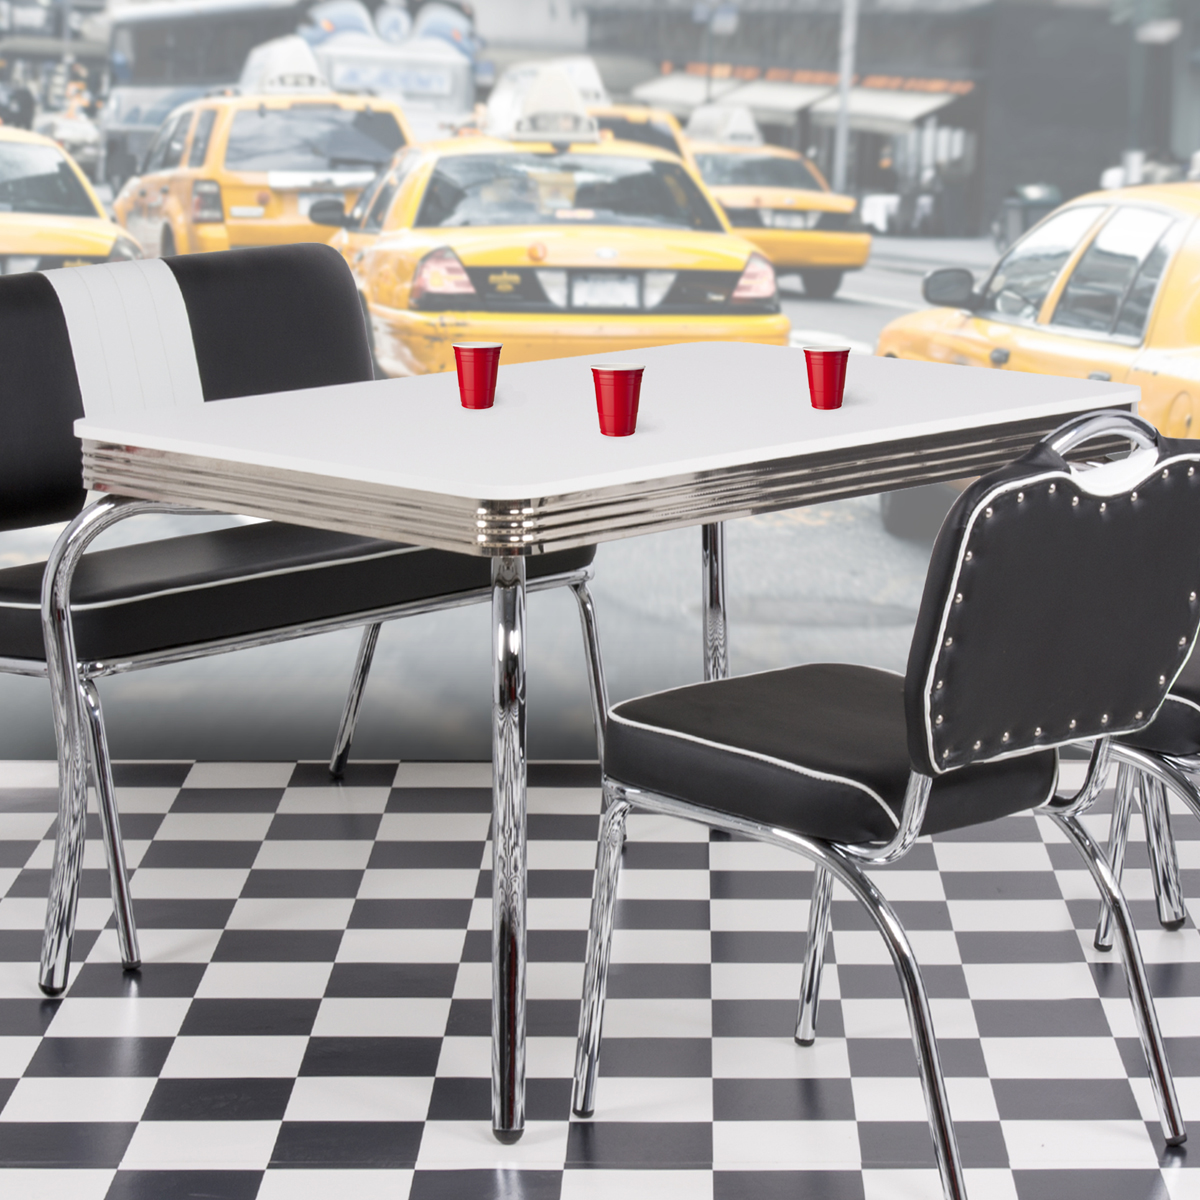 tisch elvis american diner bistro 50er jahre rockabilly. Black Bedroom Furniture Sets. Home Design Ideas